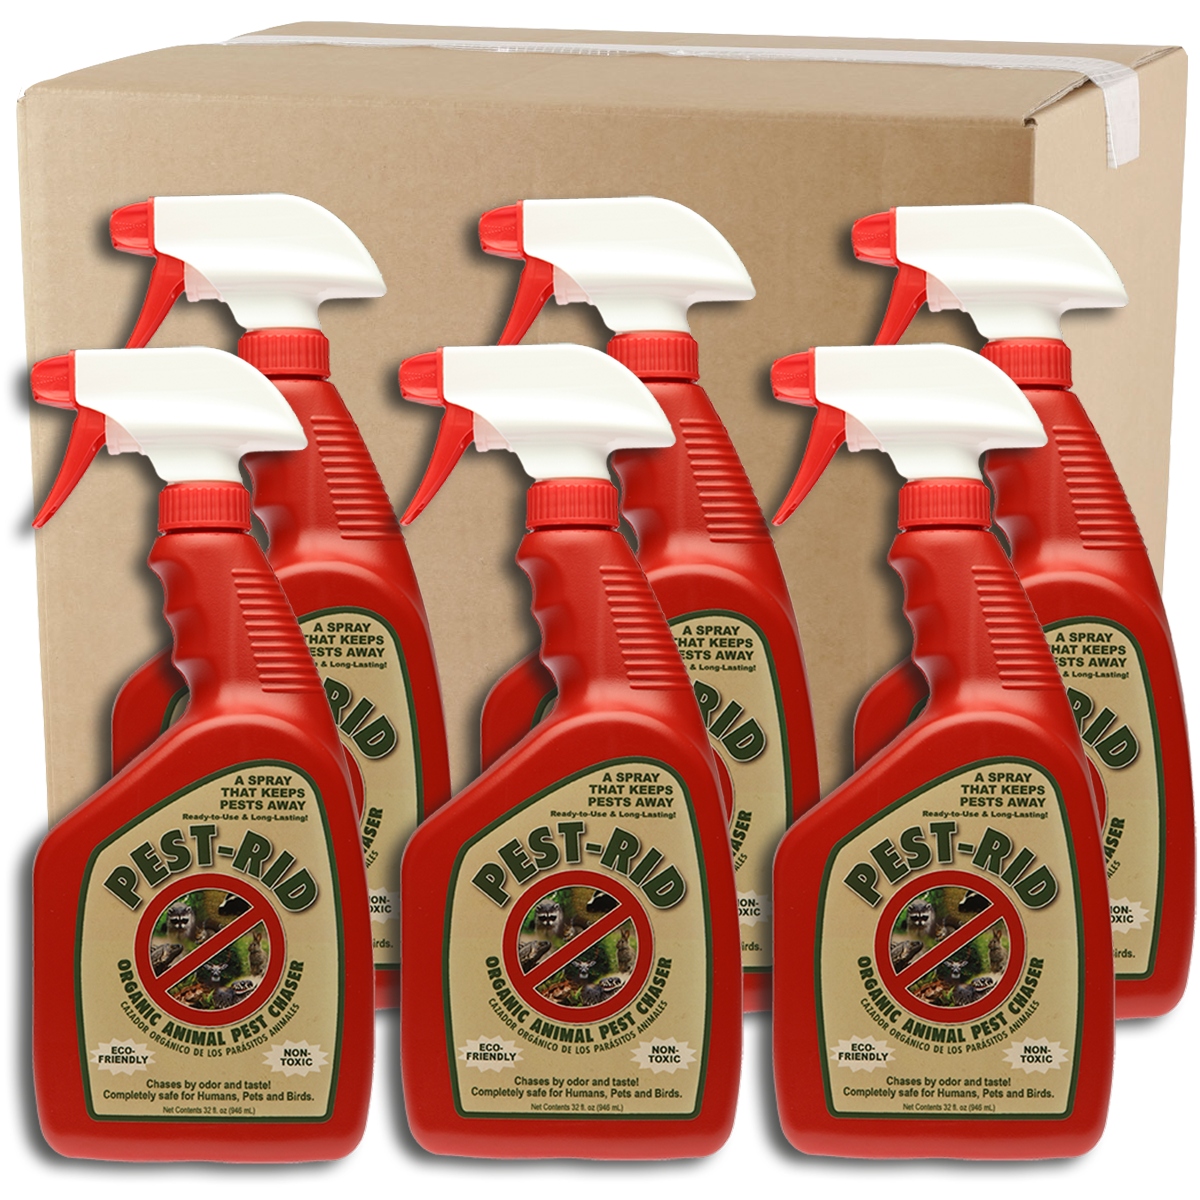 Wholesale Pest-Rid 32oz Spray Case